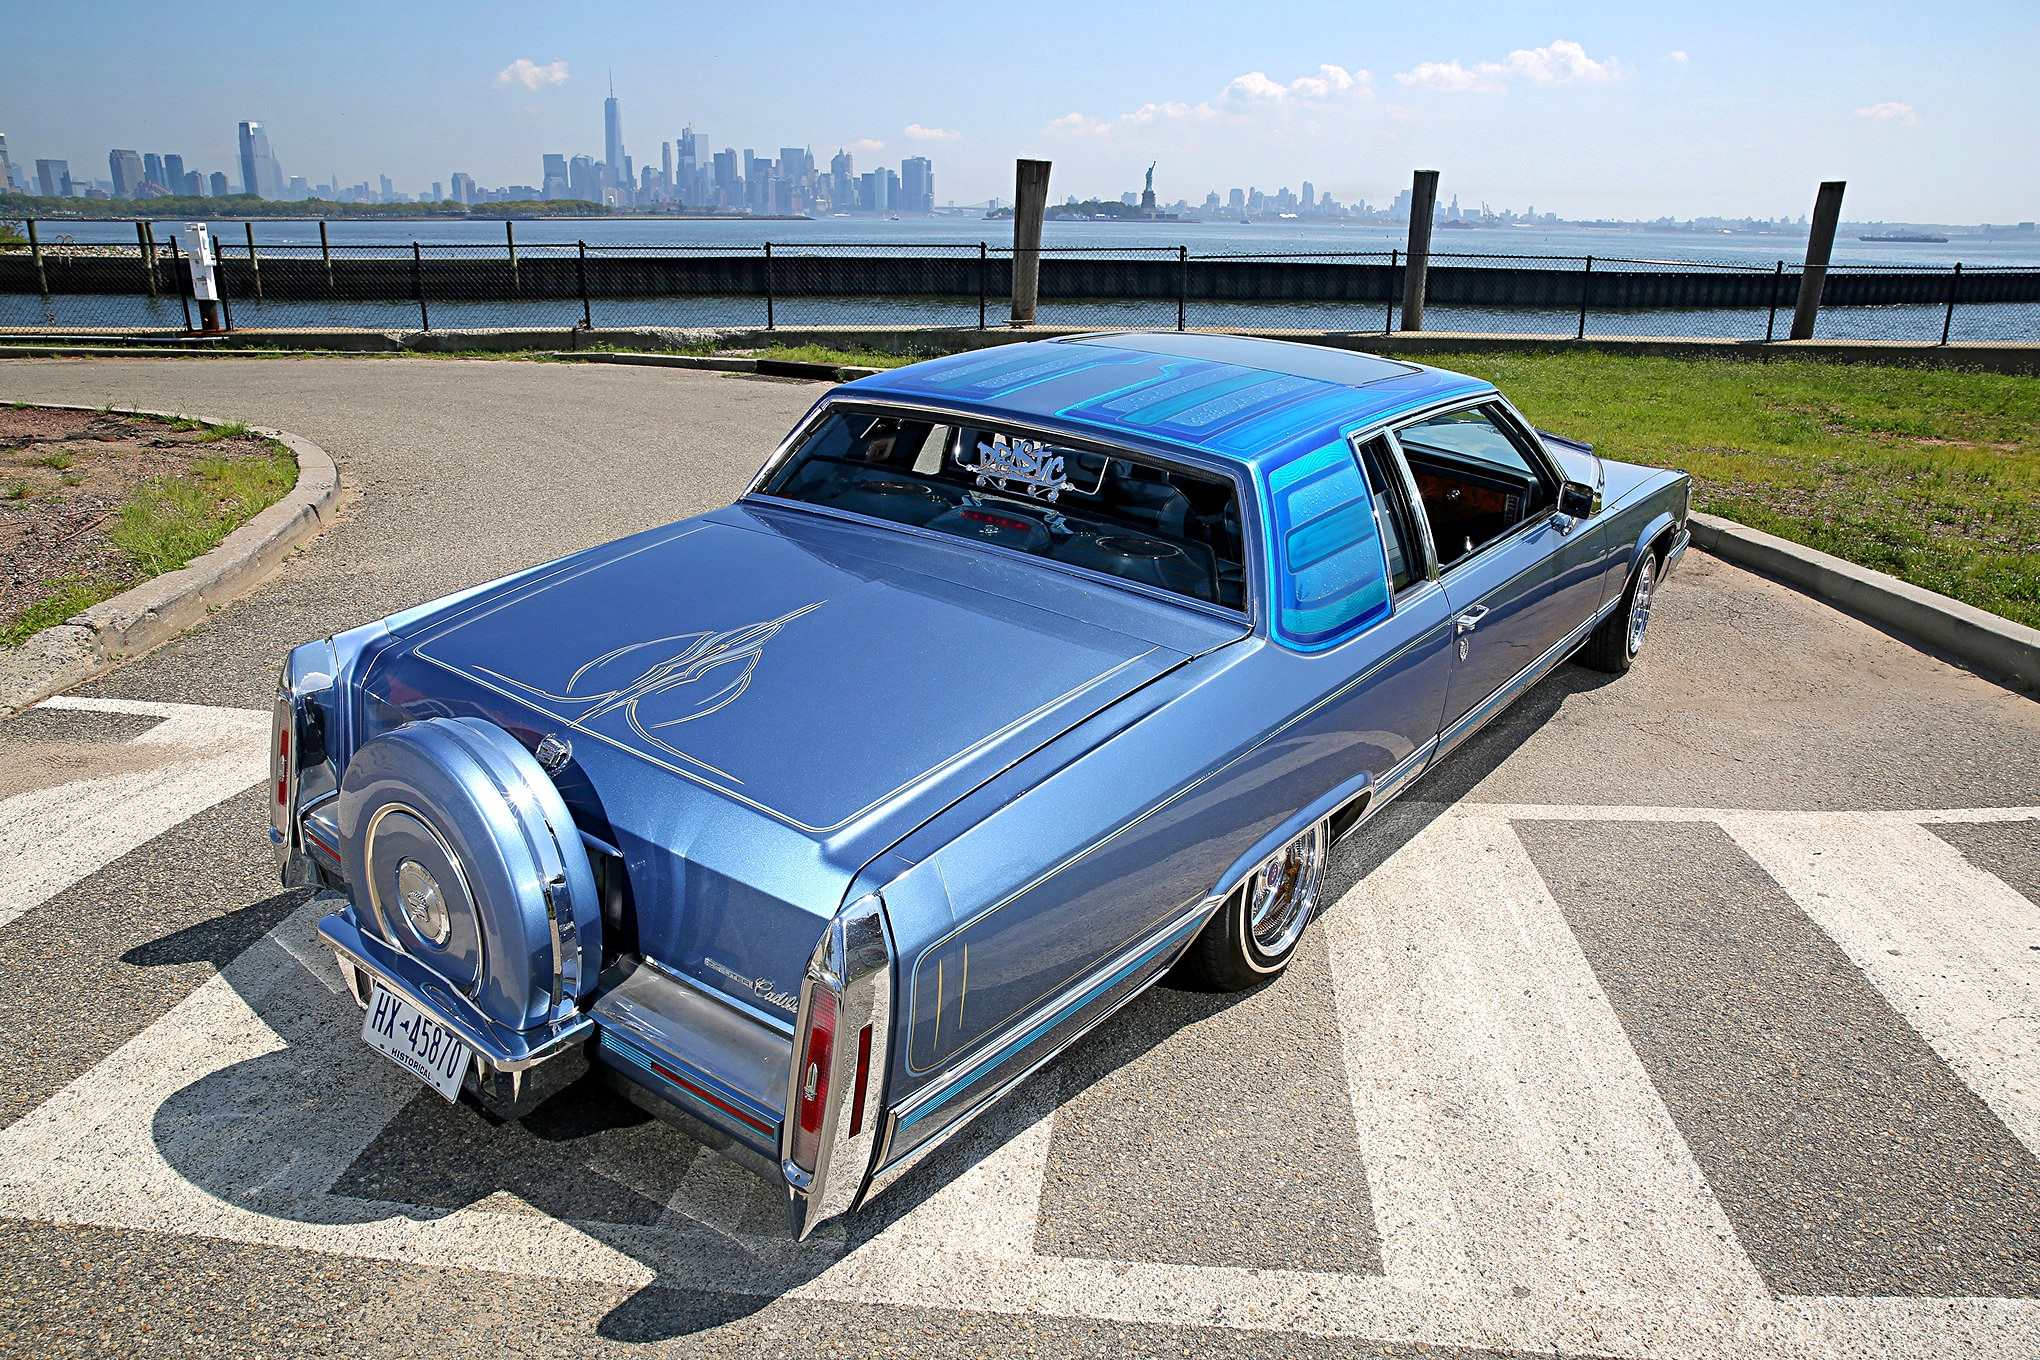 Mike Guptar's 1984 Cadillac Coupe De Ville - Brooklyn Projects